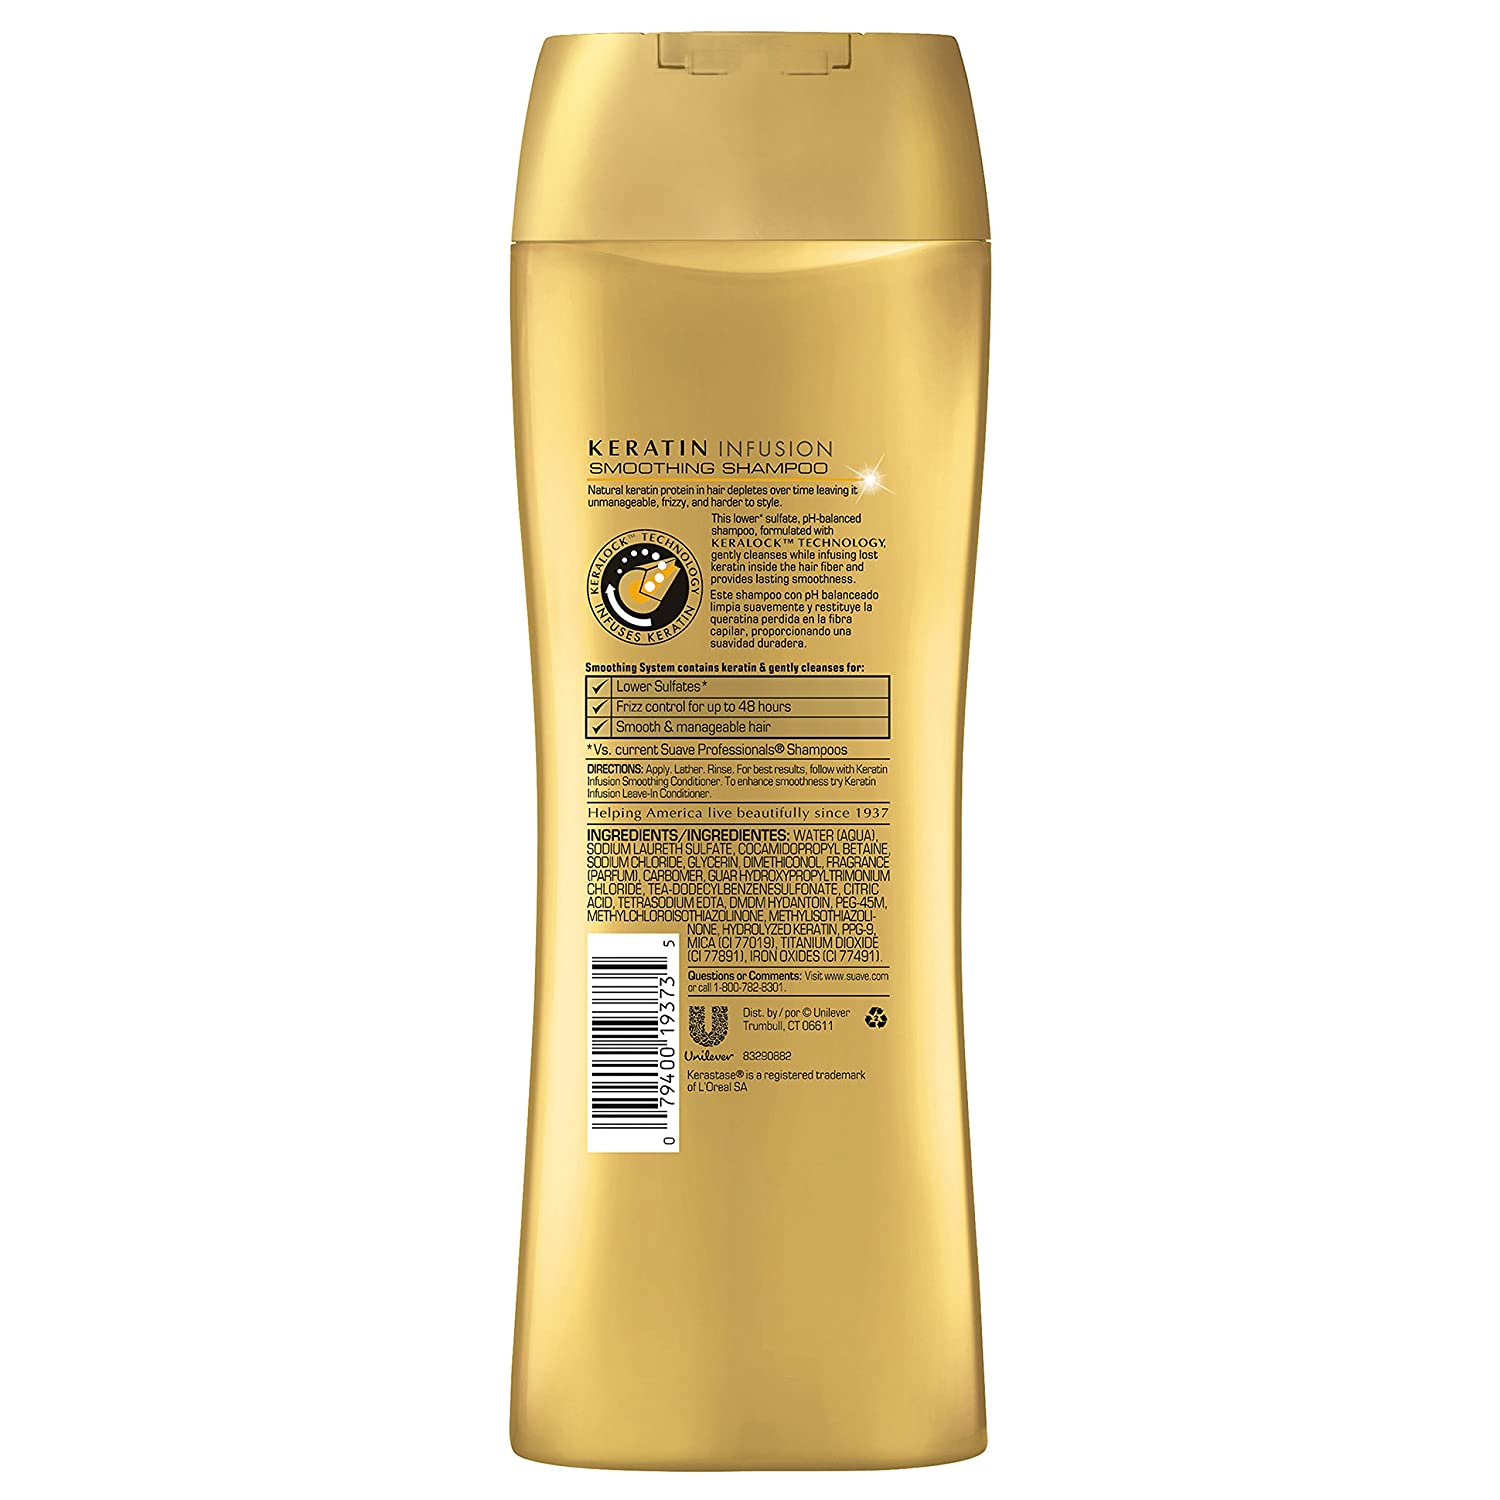 Amazon.com : Suave Professionals Smoothing Shampoo, Keratin Infusion 12.6 Ounce, (Value Pack of 6) : Beauty